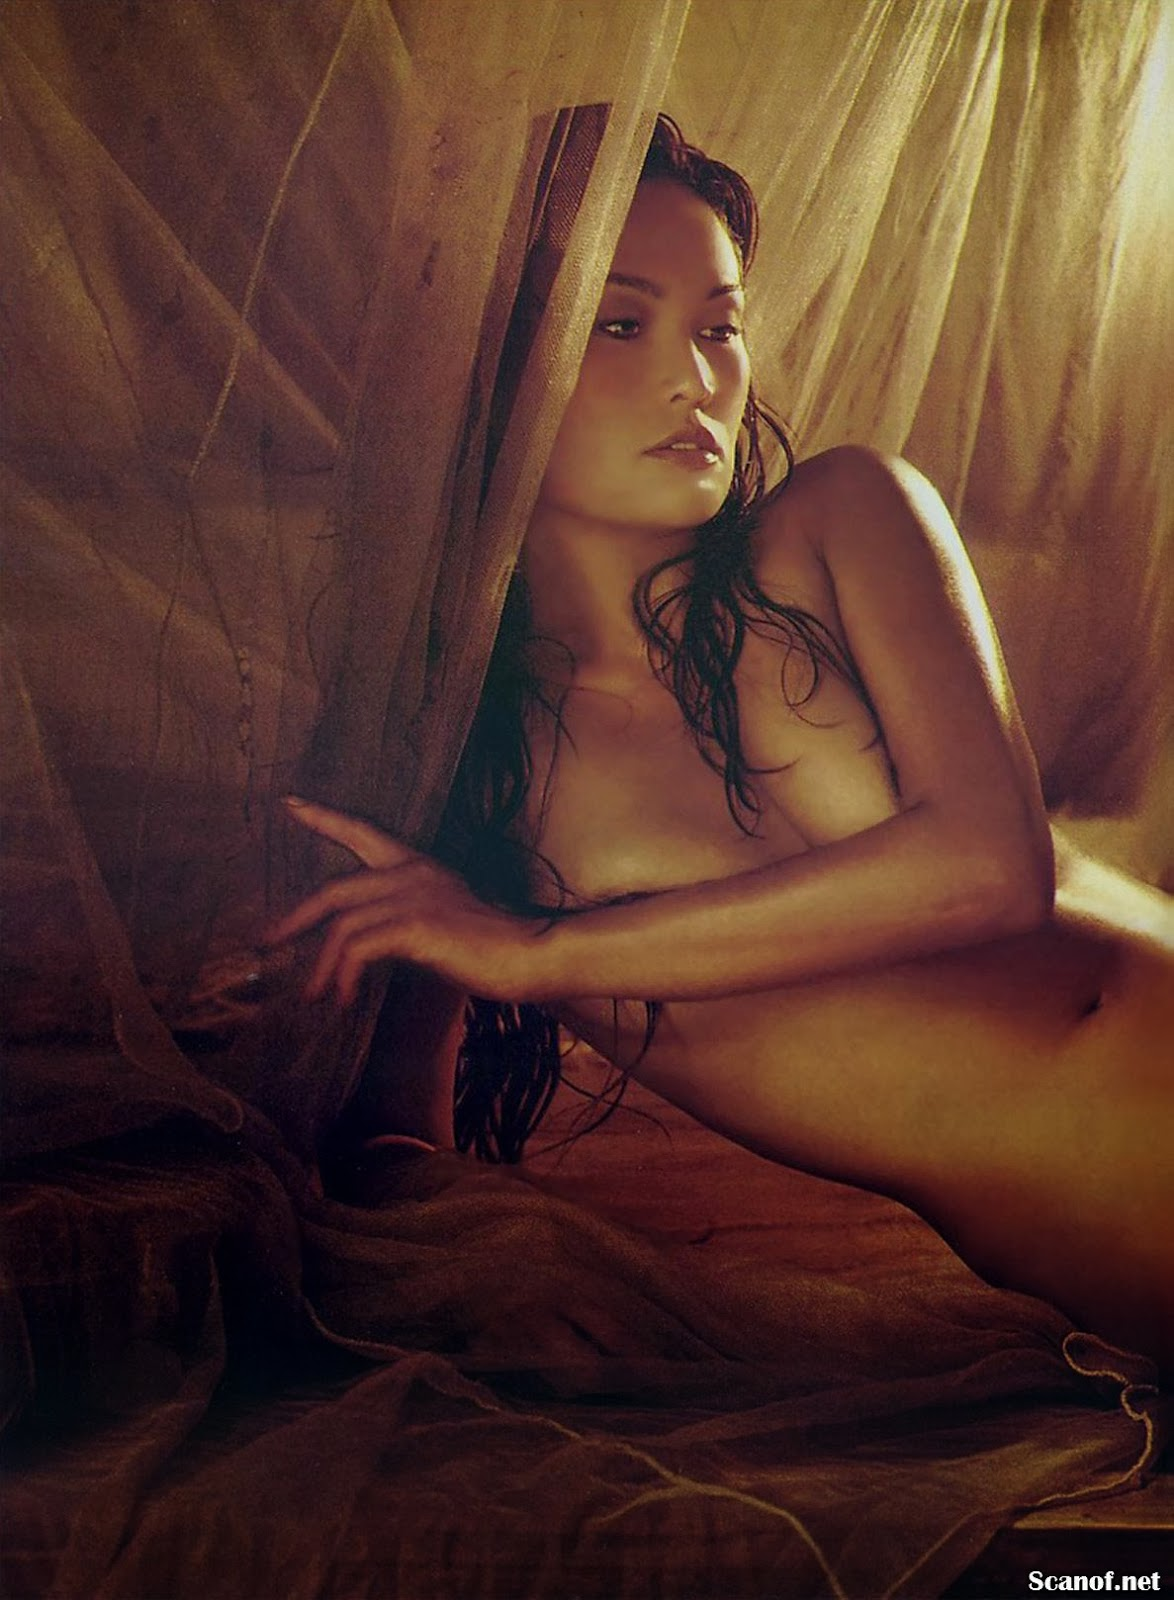 Tia carrere playboy pictures